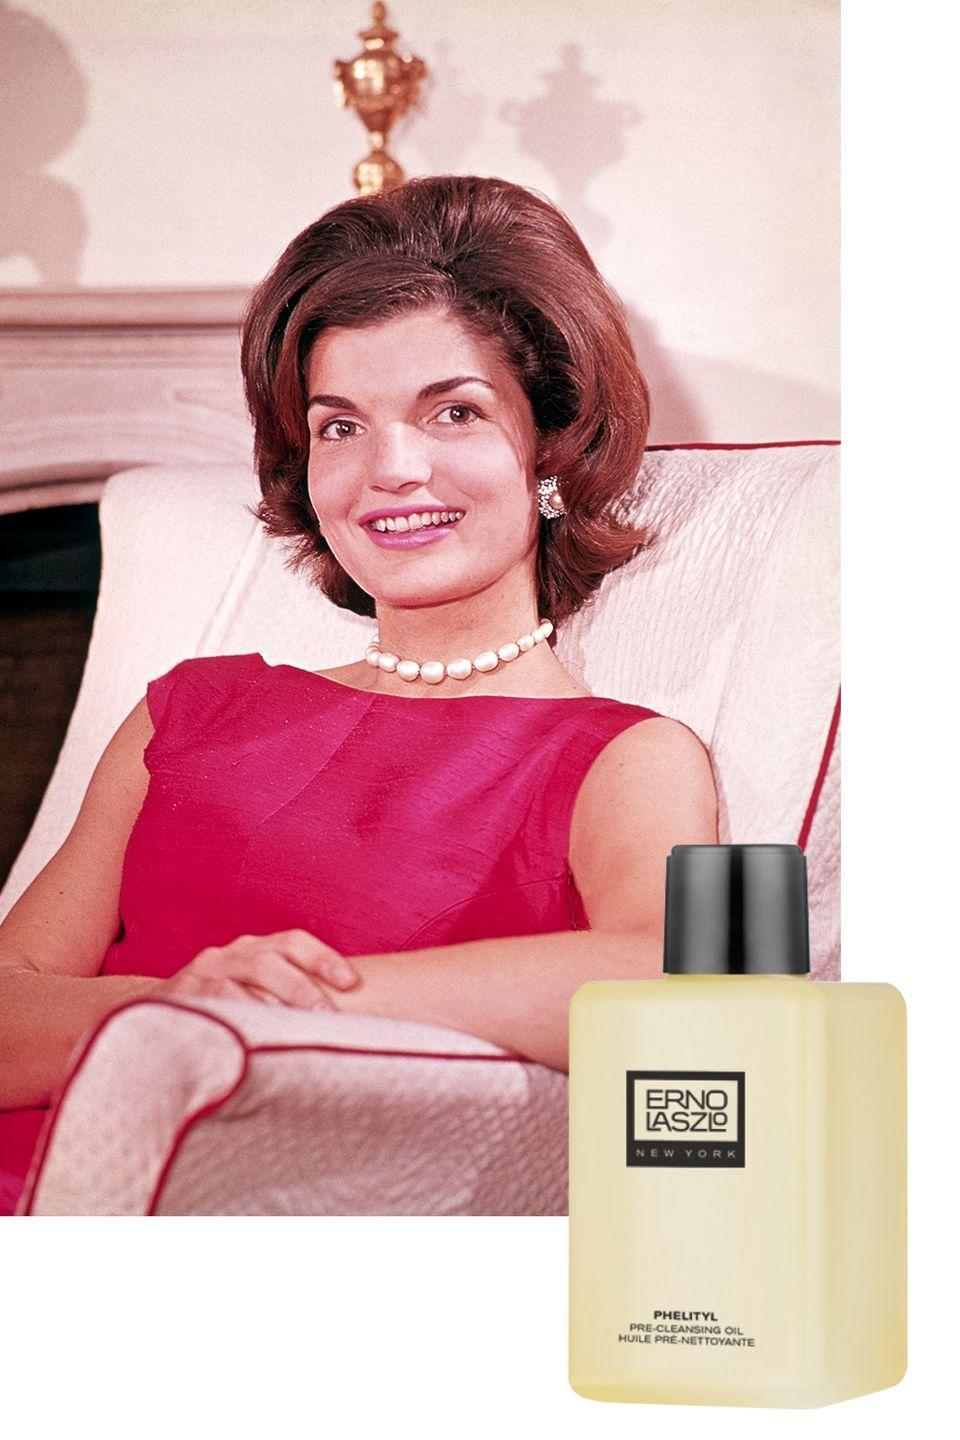 "<p>Kennedy used yet another Erno Lazlo product on her face, which is no surprise considering the former First Lady was a client of the famed dermatologist. <a href=""https://www.vogue.com/article/jackie-natalie-portman-jacqueline-kennedy-beauty-rules-golden-globes-2017"" rel=""nofollow noopener"" target=""_blank"" data-ylk=""slk:According to Vogue,"" class=""link rapid-noclick-resp"">According to <em>Vogue,</em></a> Jackie's favorite face oil was an early version of Lazlo's <a href=""https://www.ernolaszlo.com/phelityl-pre-cleansing-oil.html"" rel=""nofollow noopener"" target=""_blank"" data-ylk=""slk:Phelityl Pre Cleansing Oil"" class=""link rapid-noclick-resp"">Phelityl Pre Cleansing Oil</a>, which is still available to buy today. </p><p><a class=""link rapid-noclick-resp"" href=""https://go.redirectingat.com?id=74968X1596630&url=https%3A%2F%2Fwww.ernolaszlo.com%2Fphelityl-pre-cleansing-oil.html&sref=https%3A%2F%2Fwww.goodhousekeeping.com%2Flife%2Fentertainment%2Fg33481959%2Fjackie-kennedy-beauty-tips%2F"" rel=""nofollow noopener"" target=""_blank"" data-ylk=""slk:SHOP NOW"">SHOP NOW</a> <em>Phelityl Pre-Cleansing Oil, $58</em><br></p>"